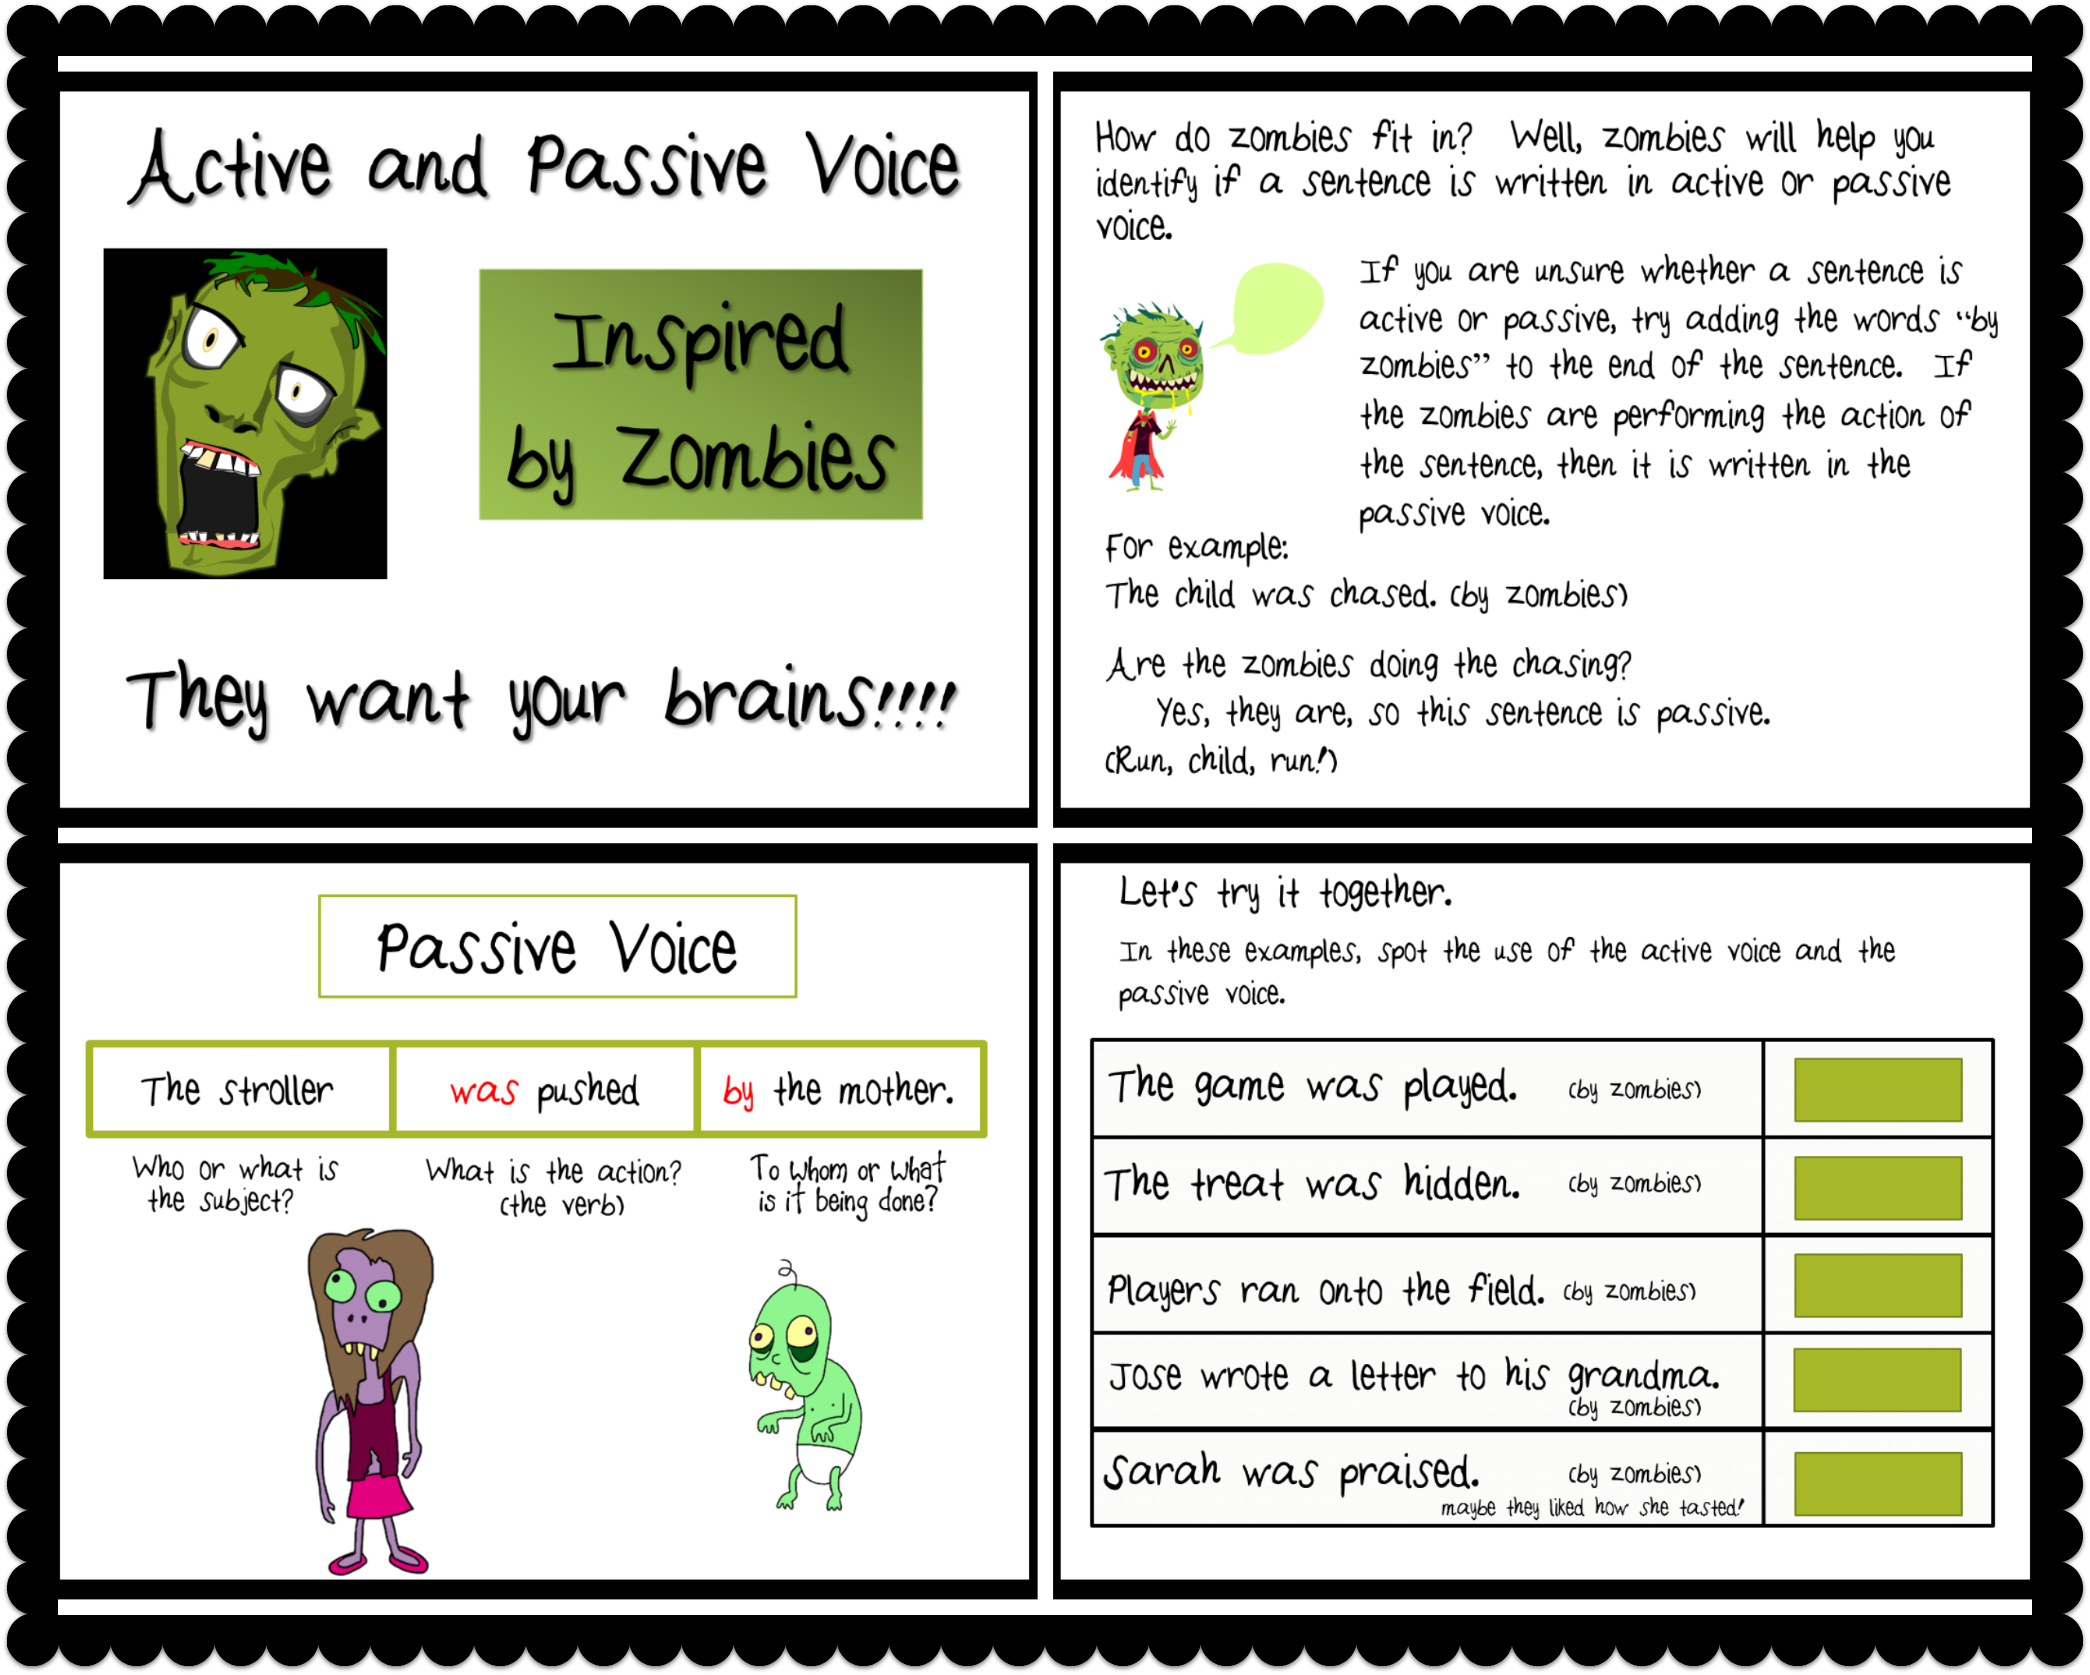 Active And Passive Voice With Zombies Powerpoint With